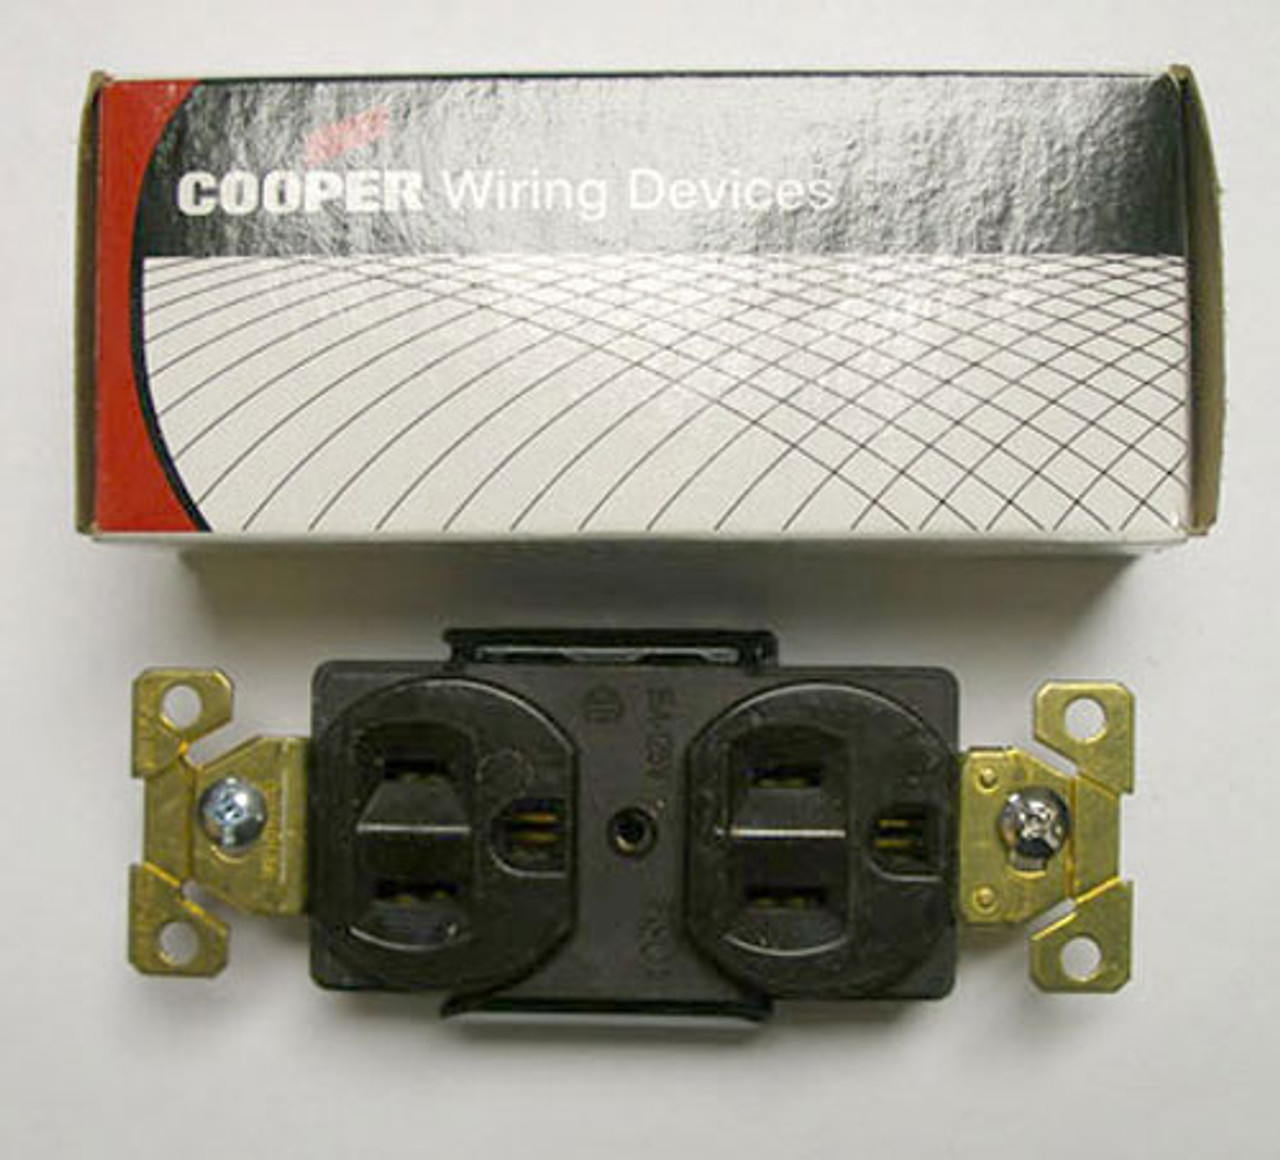 Cooper 5262B Brown Nema 5-15R Duplex Receptacle (Lot of 3) - New